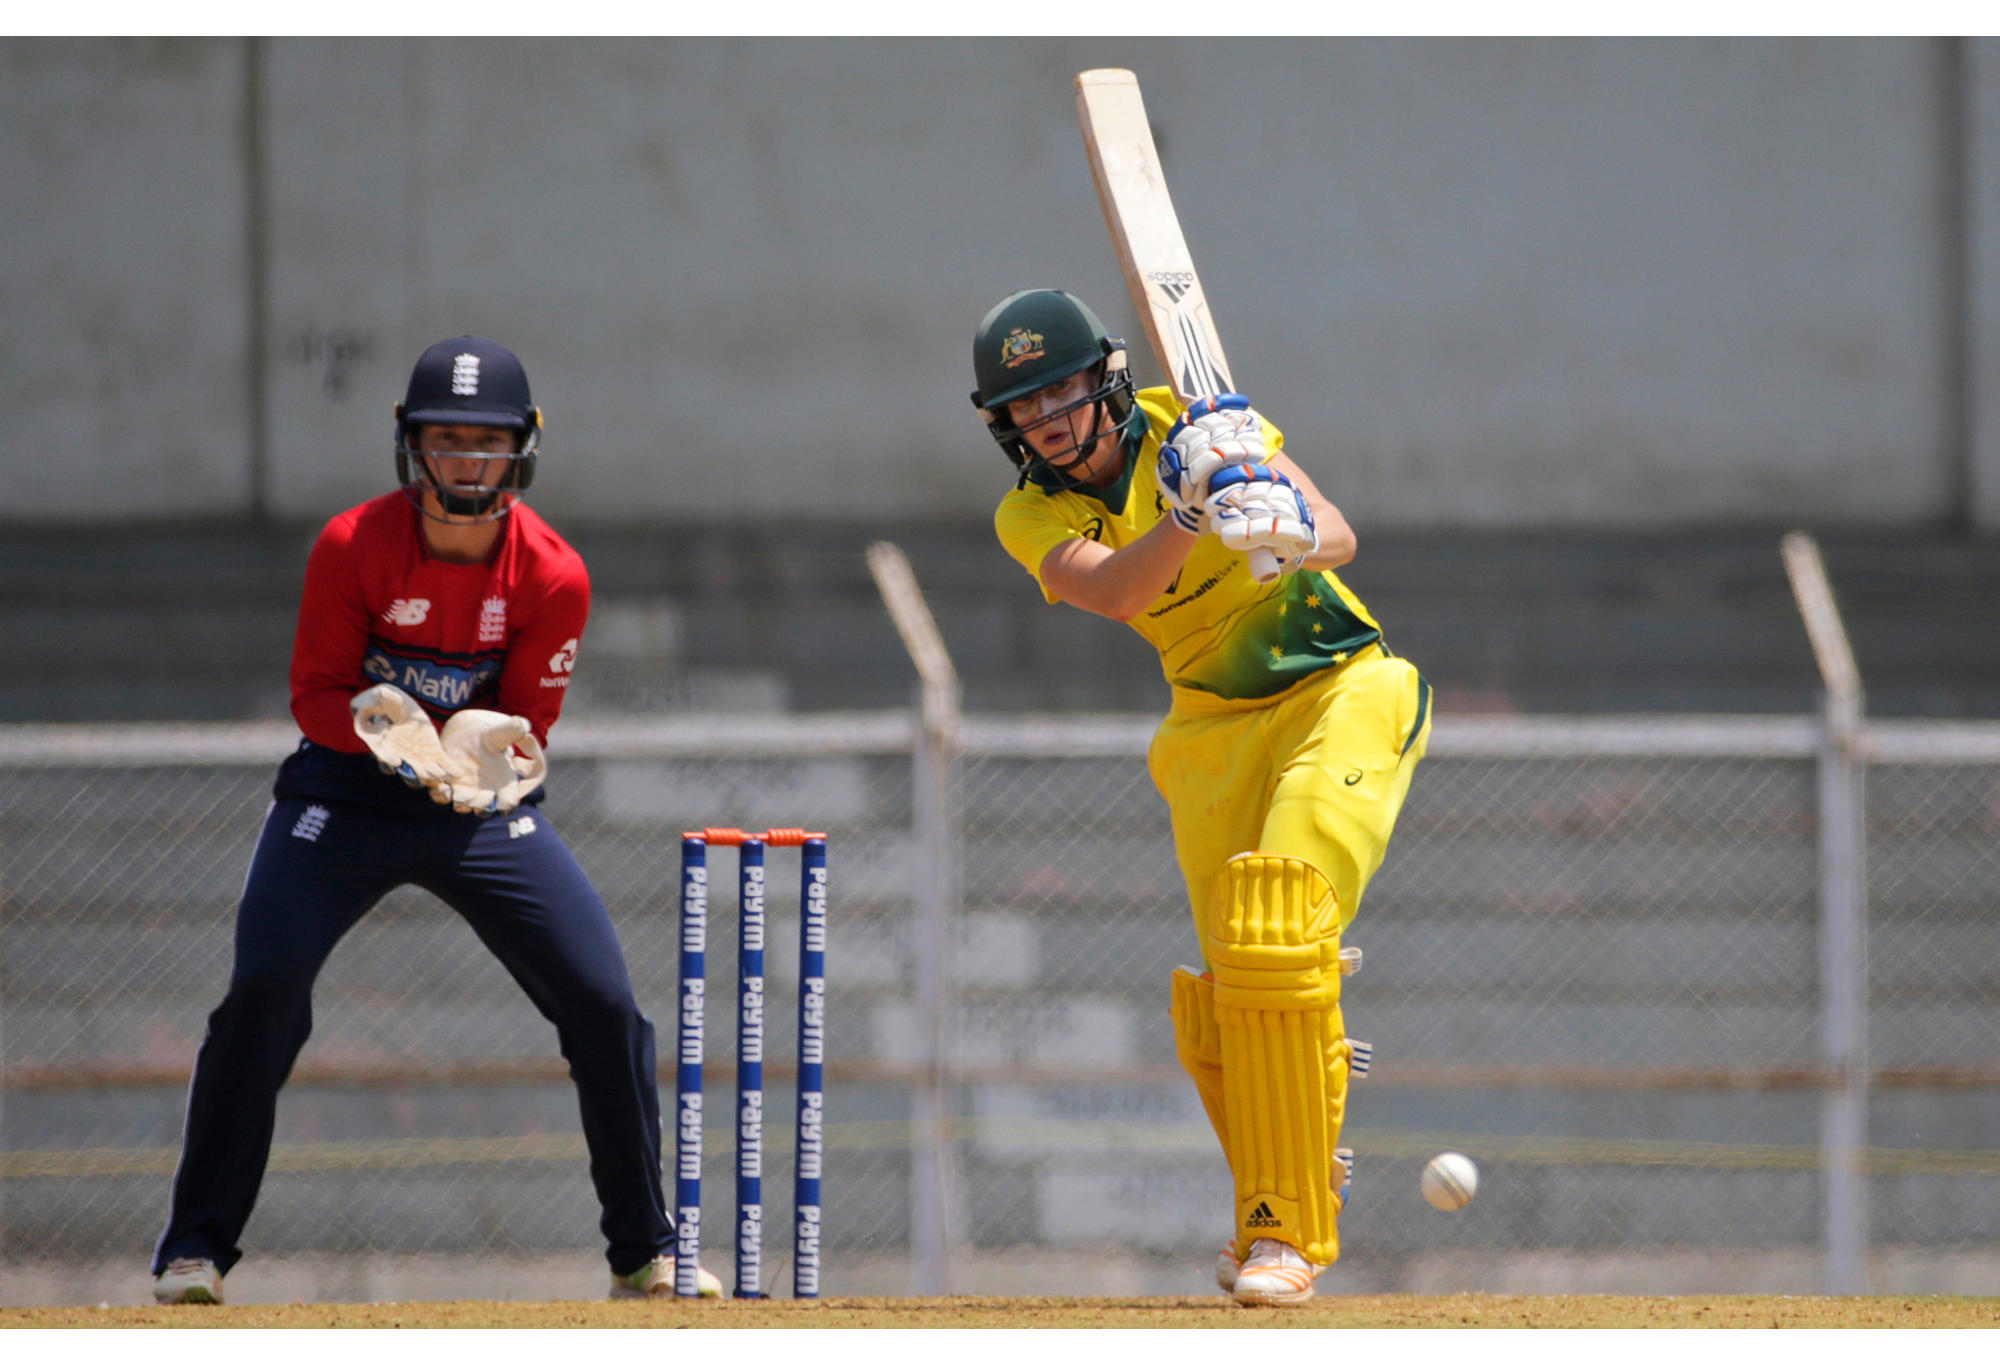 Australia's Ellyse Perry bats during the Women's T20 Triangular Series.